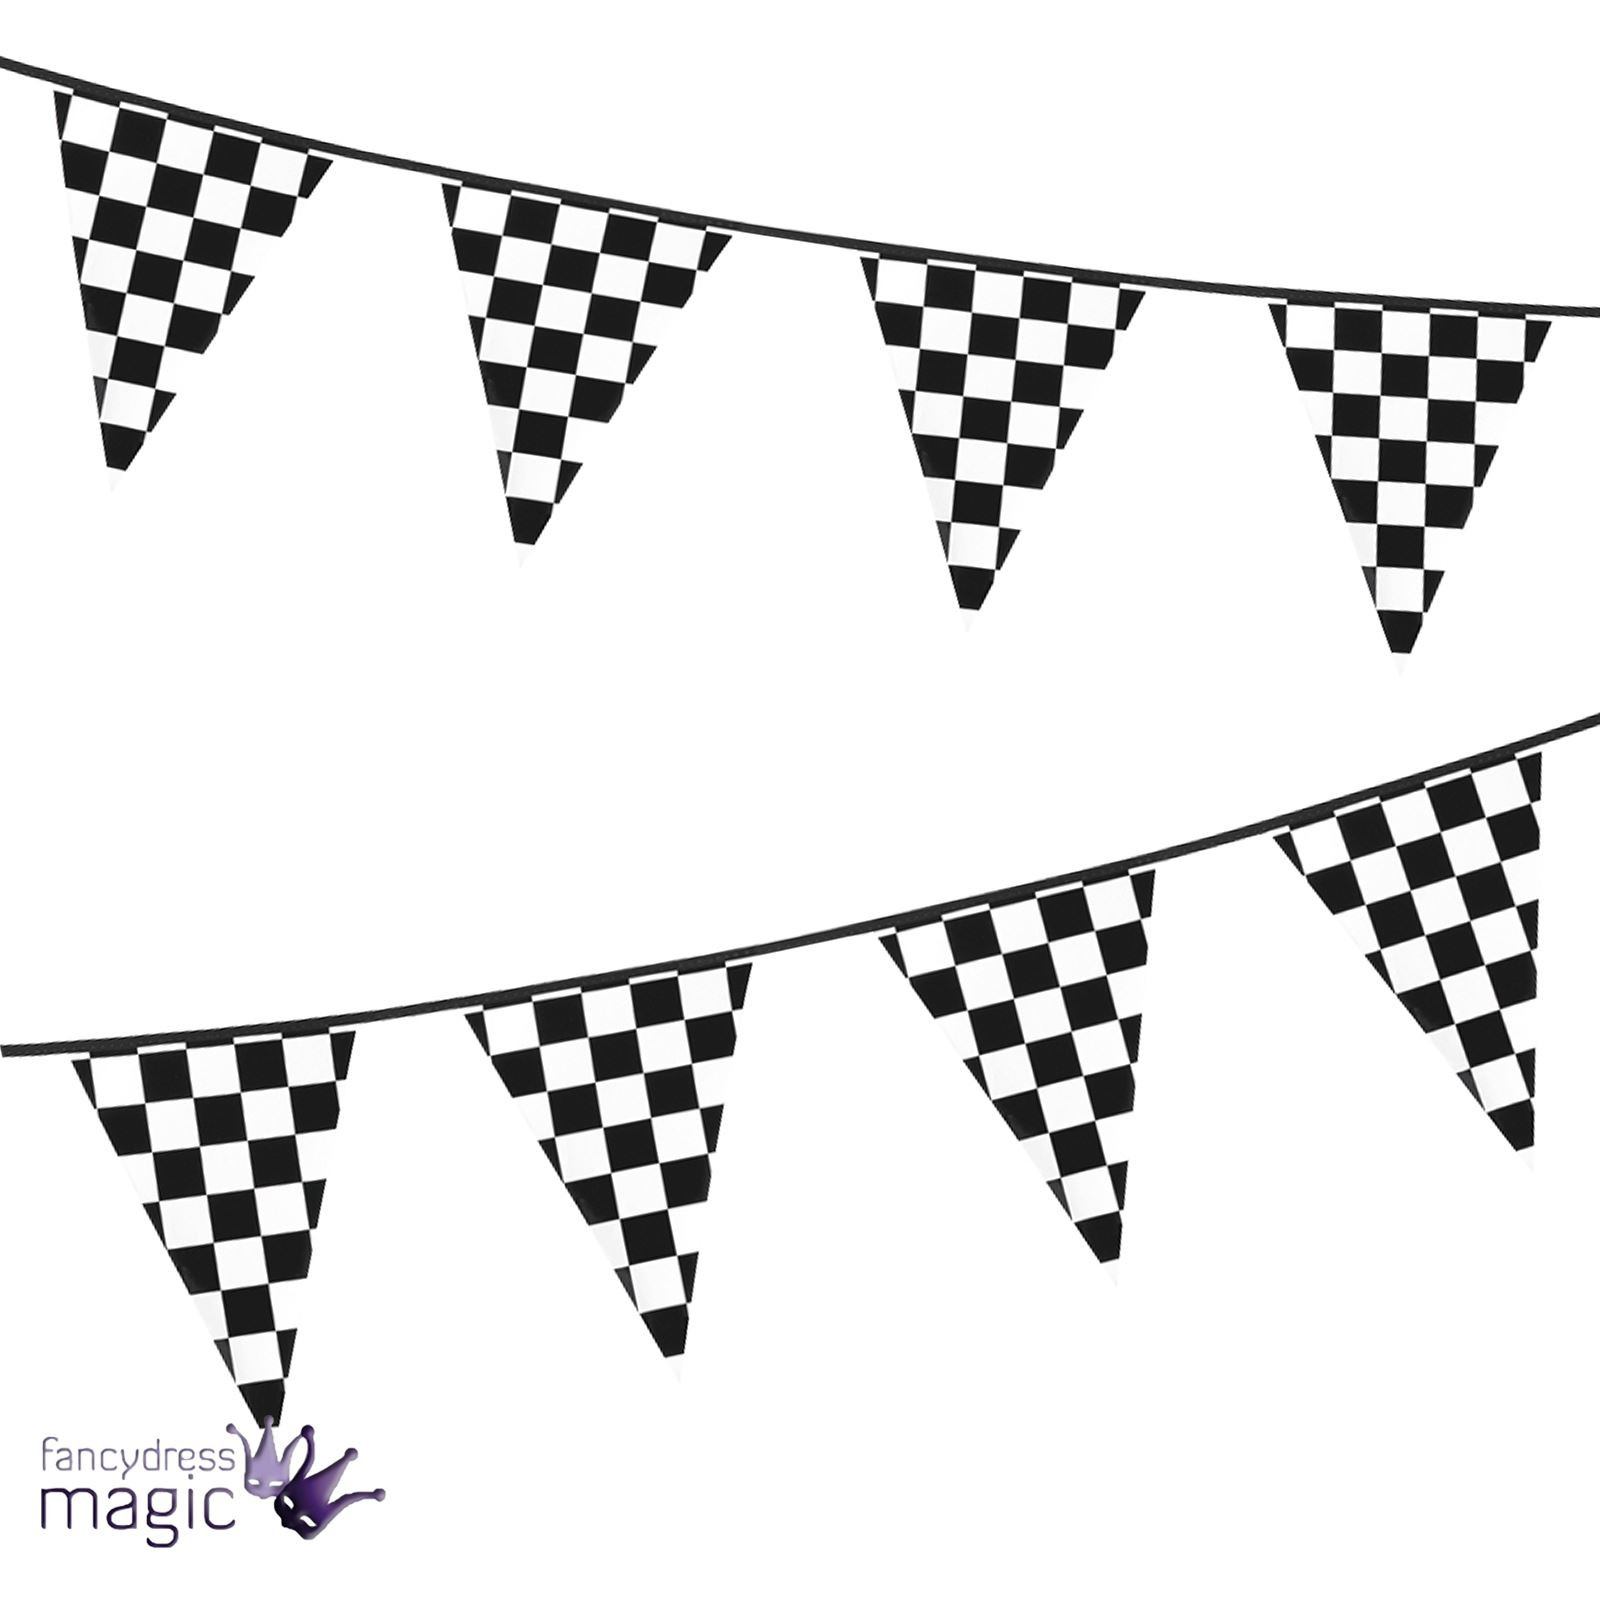 6M Chequered Flag Pennant Bunting F1 Motorsport Racing